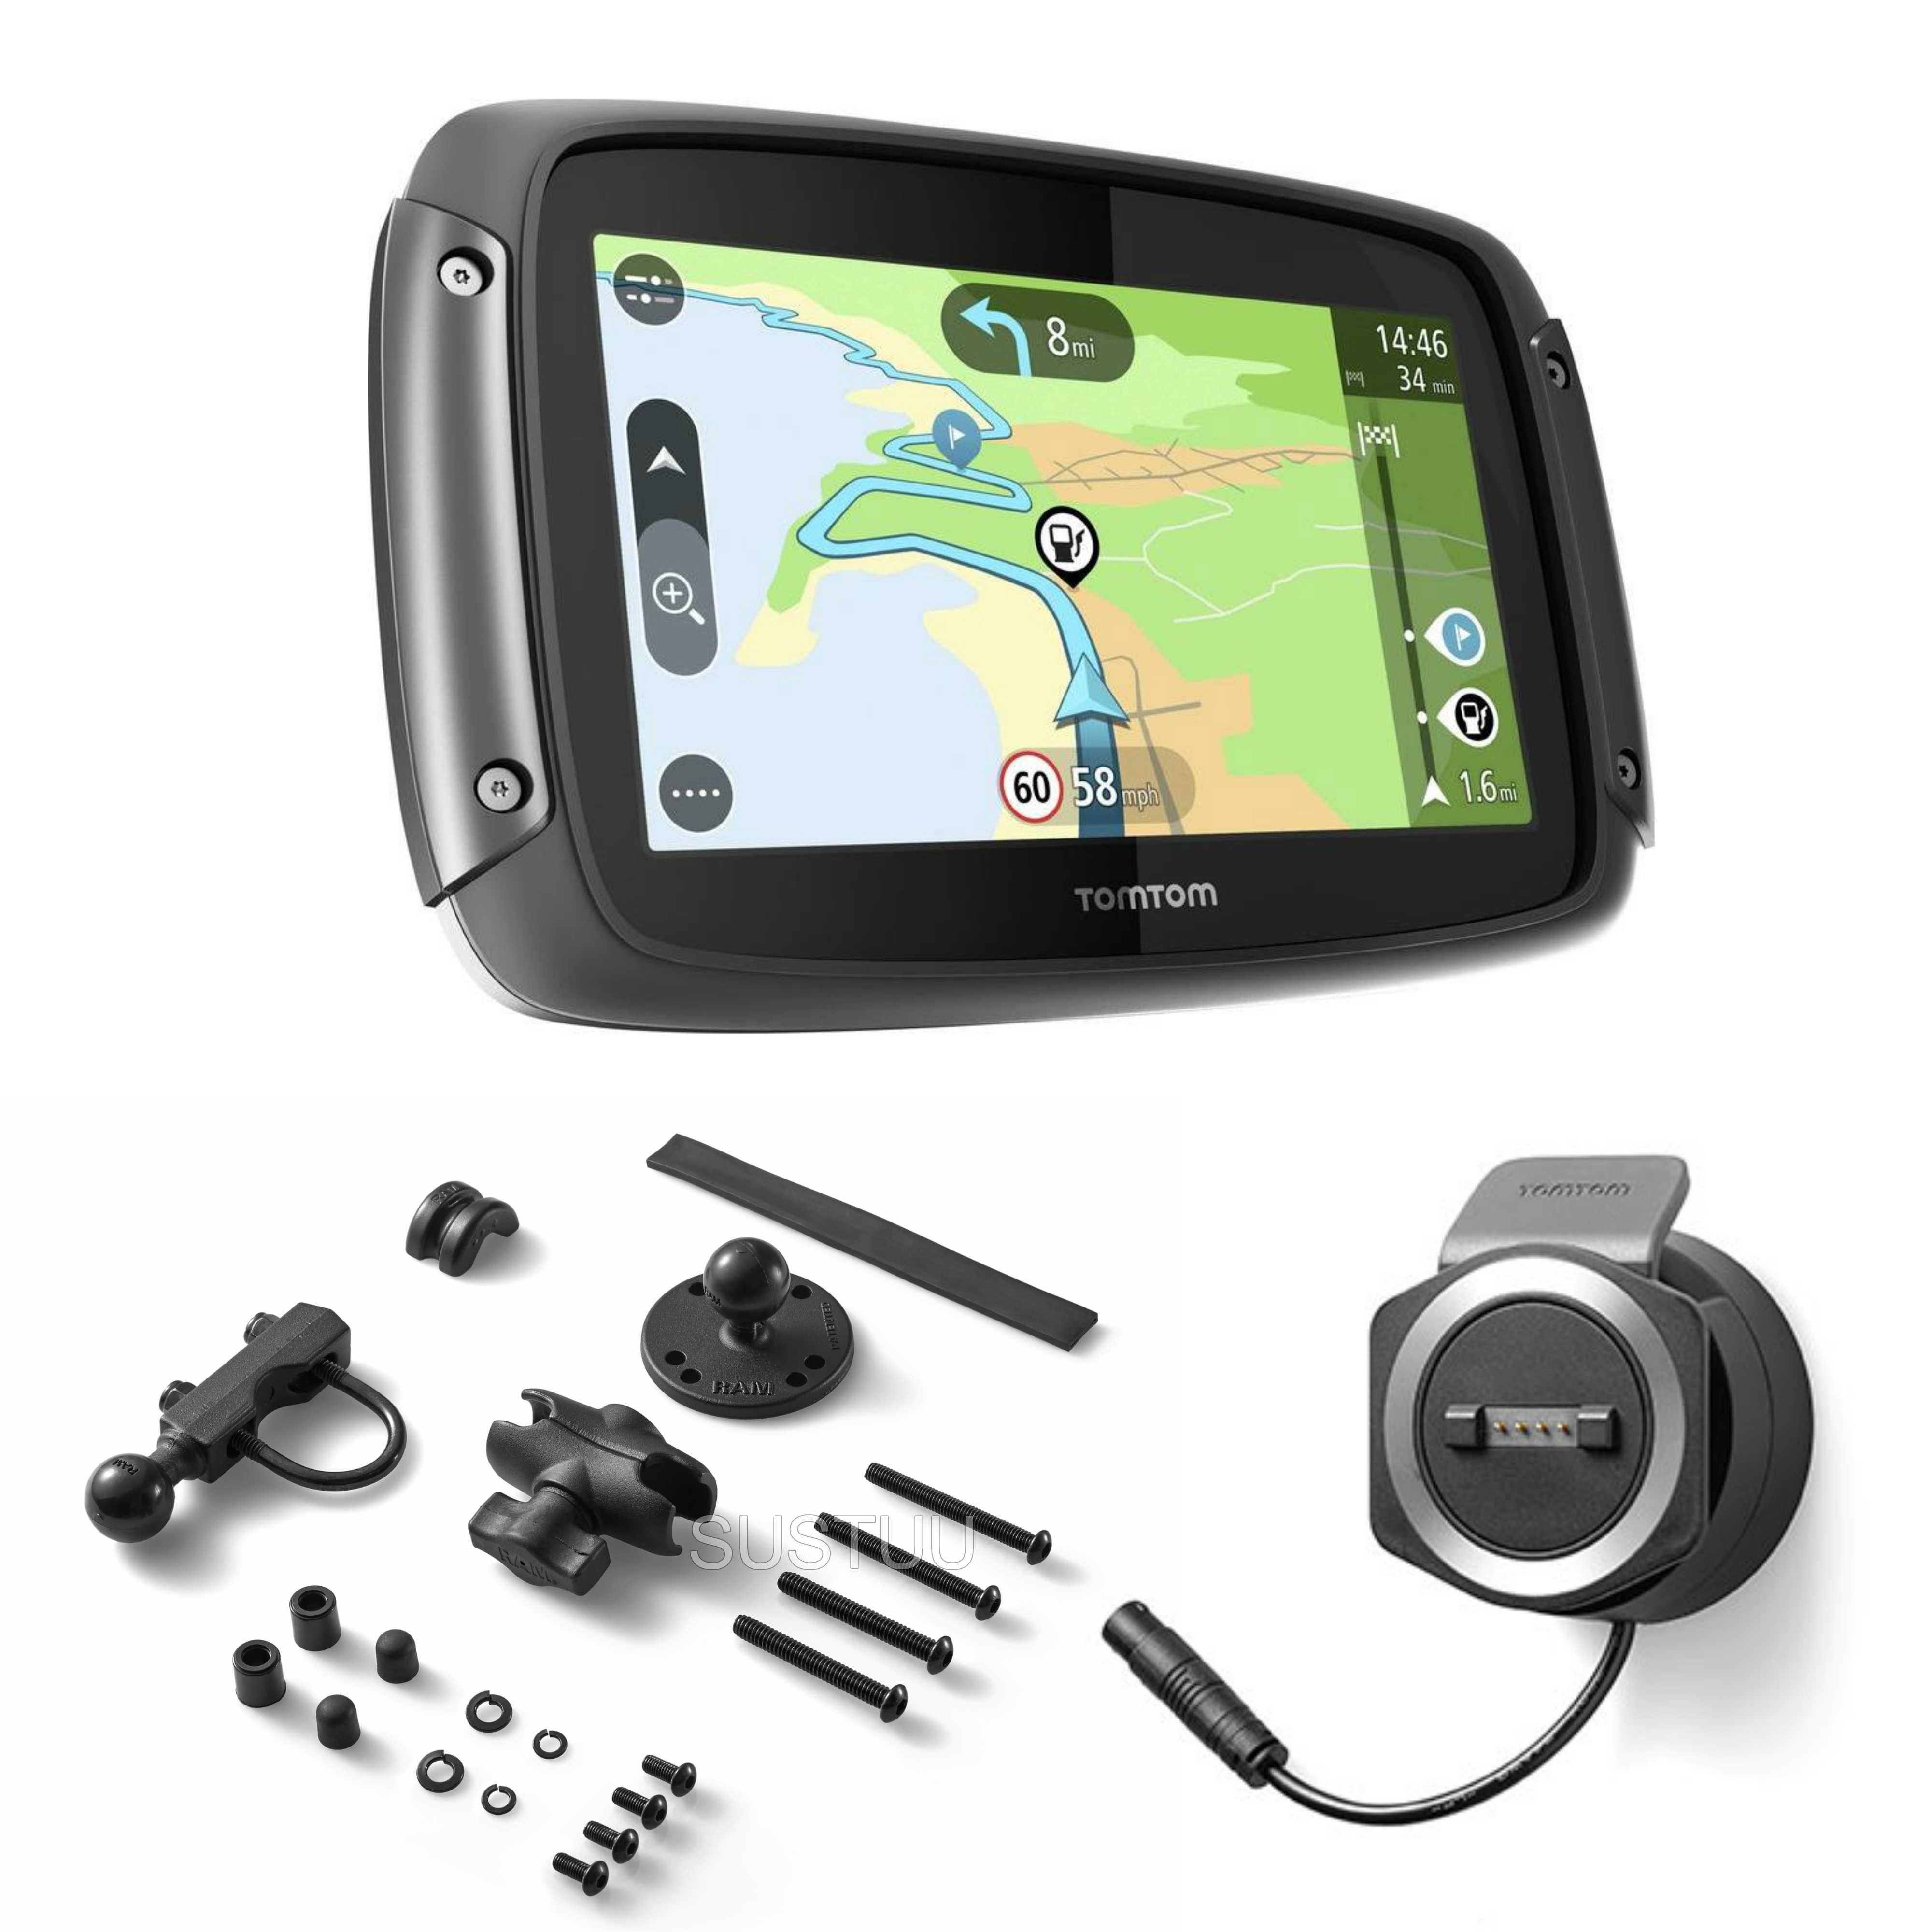 tomtom rider 420 motorcycle gps satnav lifetime uk europe maps traffic updates 636926090223 ebay. Black Bedroom Furniture Sets. Home Design Ideas